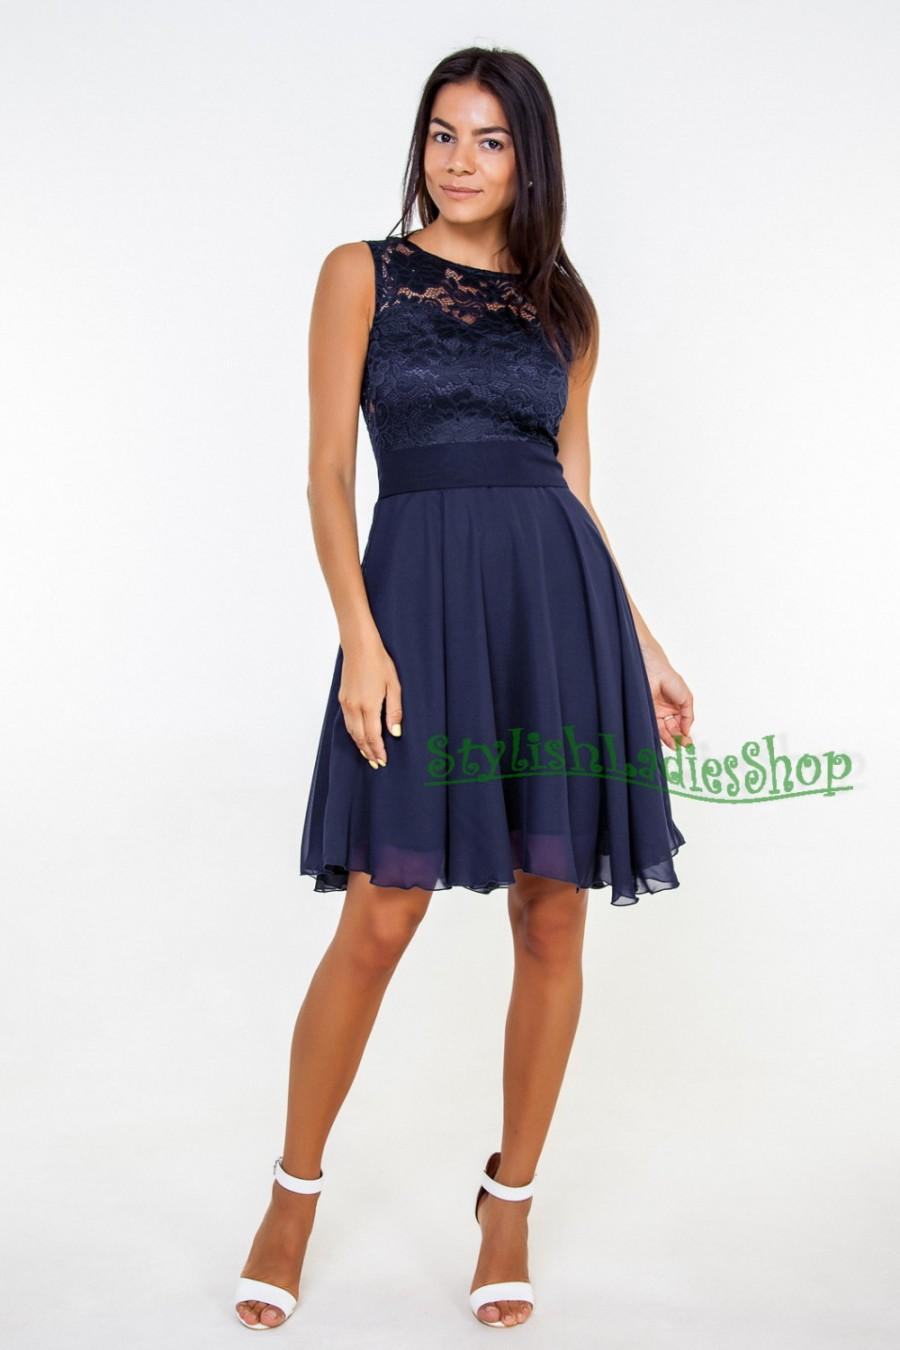 Navy Blue Bridesmaid Dress Navy Lace Dress Blue Dress Bridesmaid